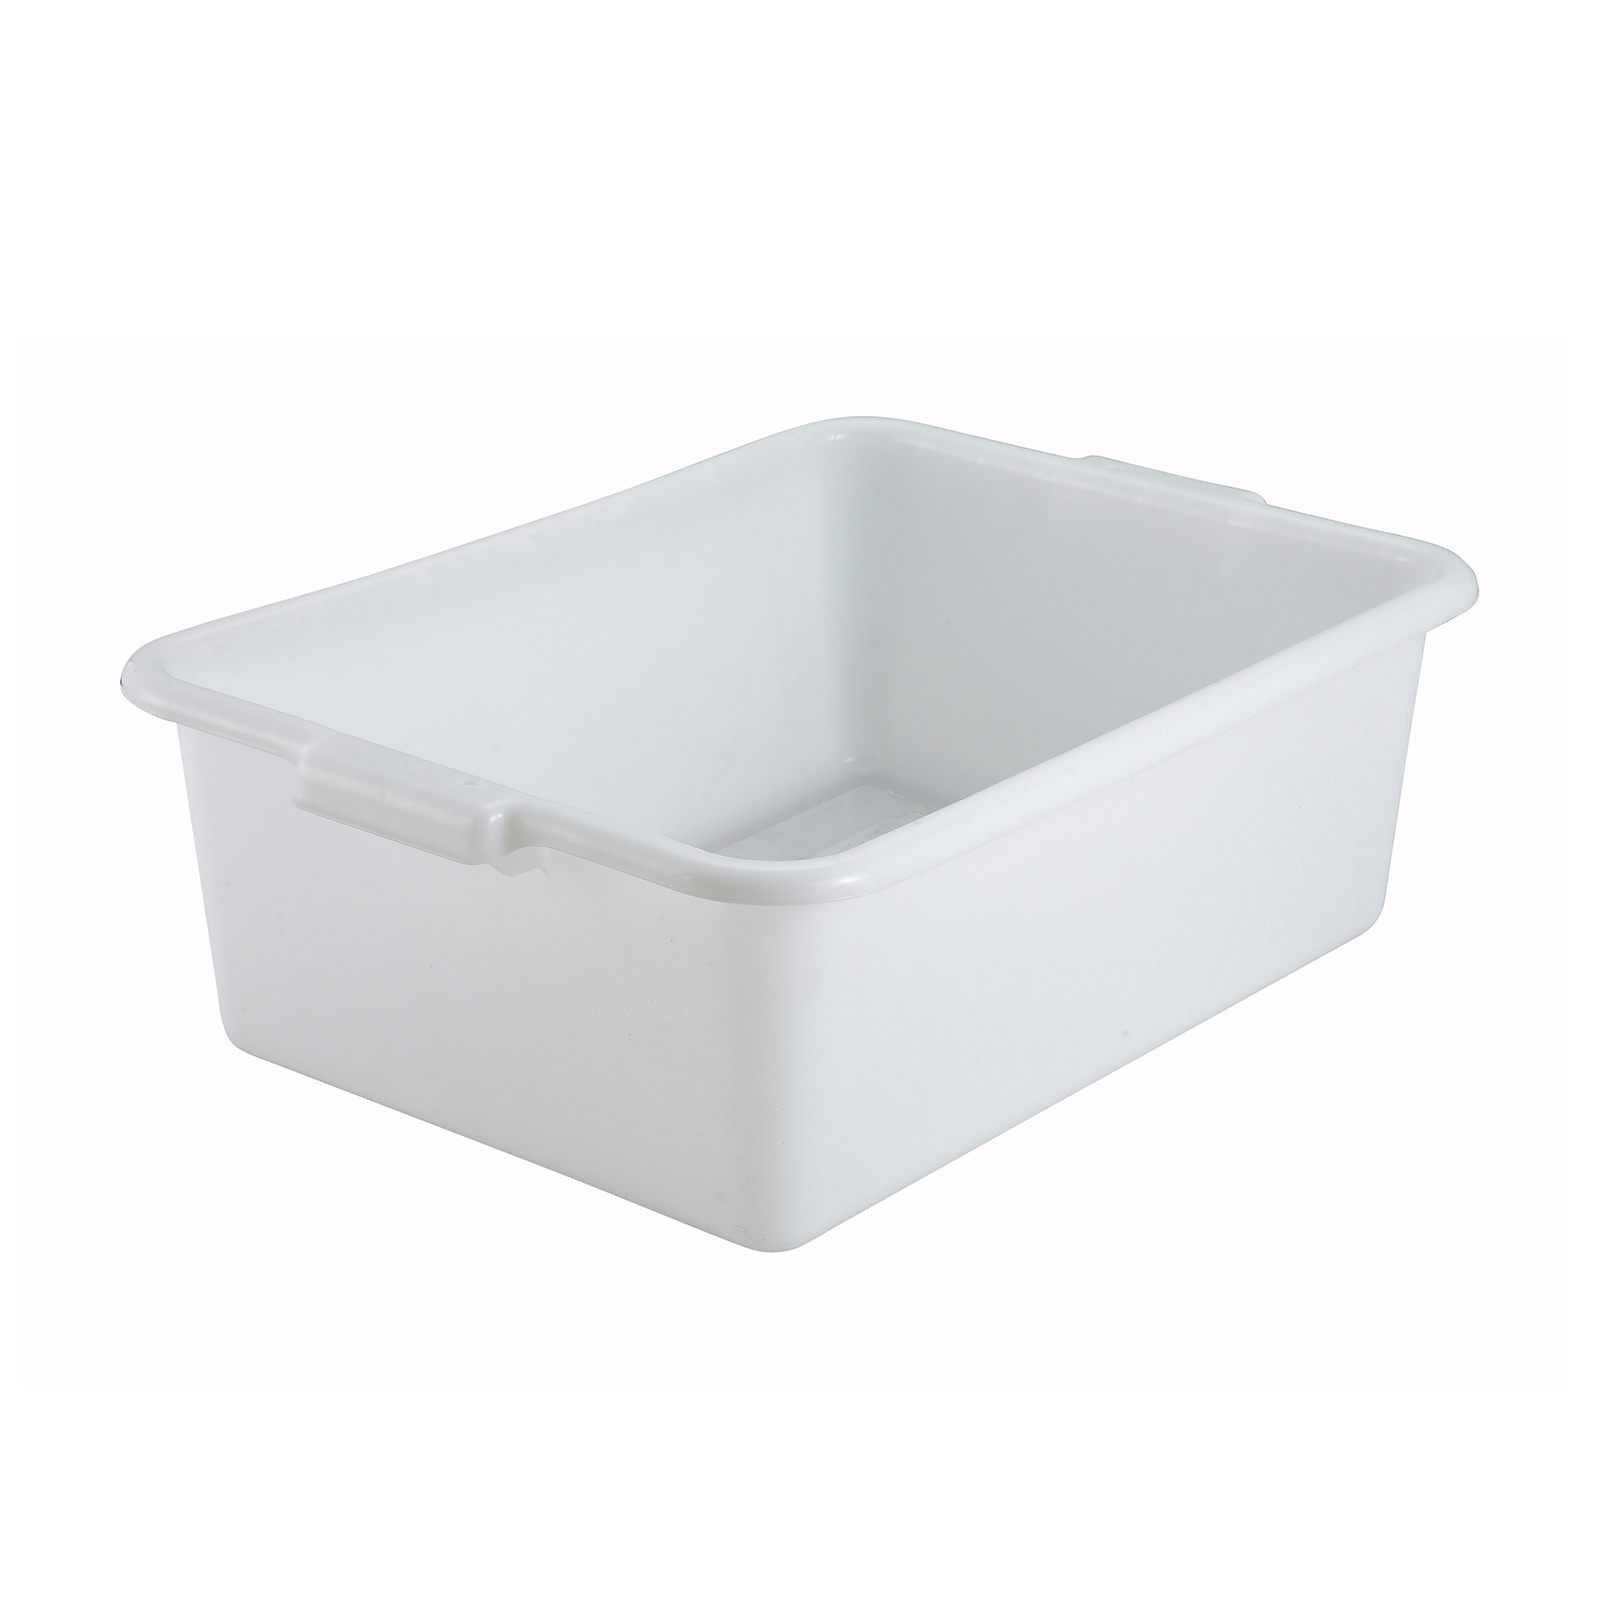 2950-12 Winco PL-7W bus box / tub